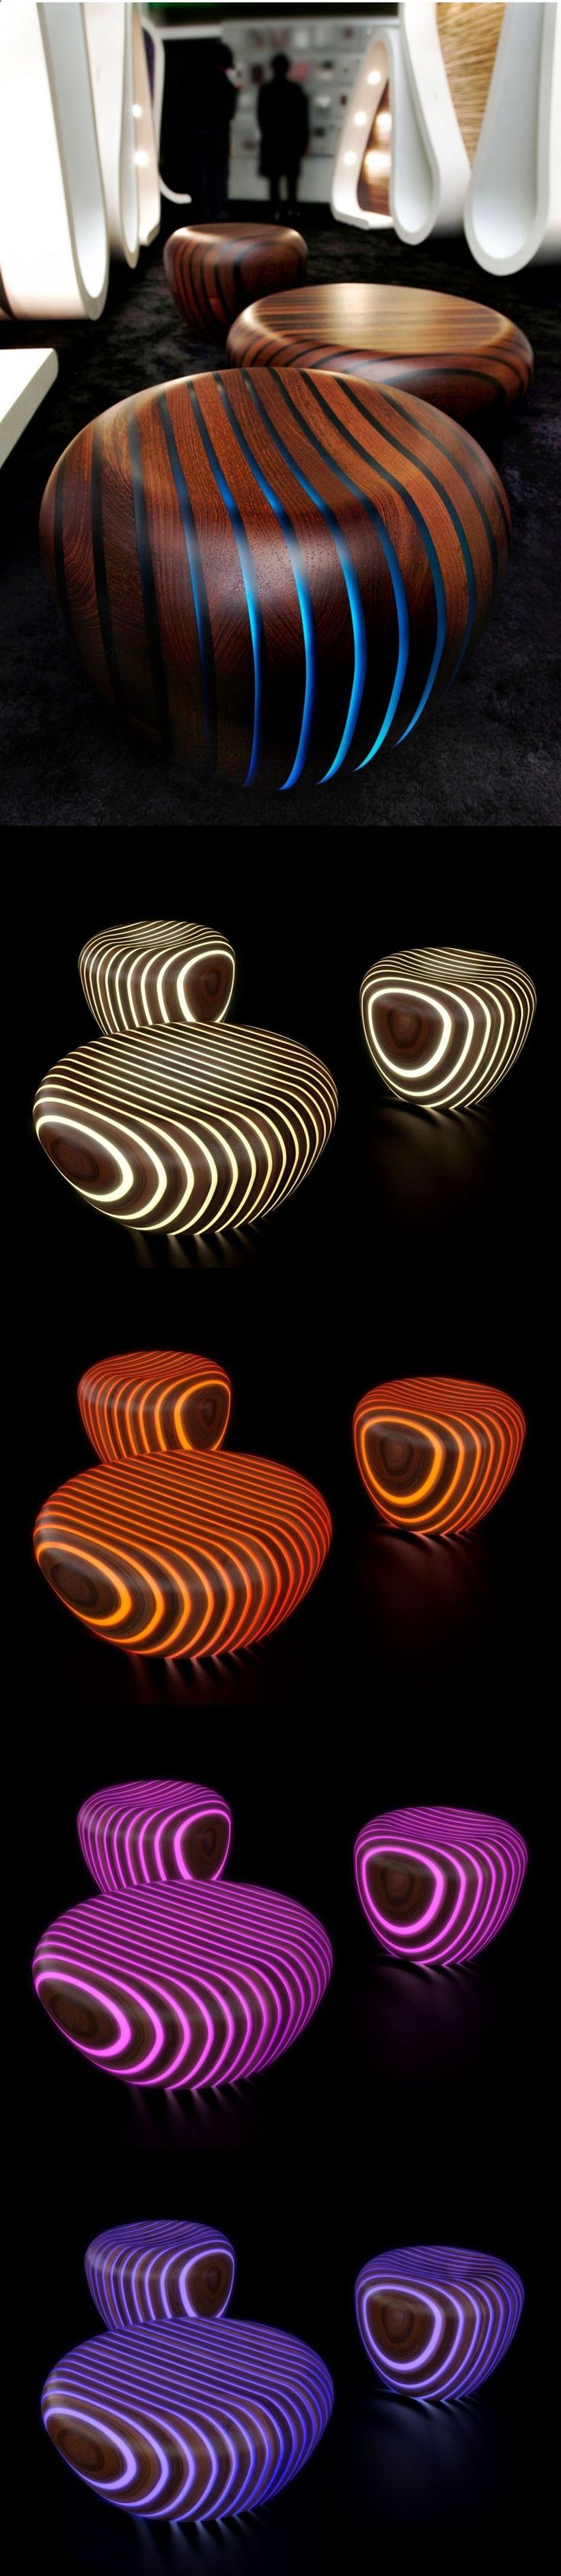 Bright Woods Collection by Giancarlo Zema for Avanzini Group... love this pairing of wood and translucency, we have done some wall features with wood/resin/light. these furniture objects play up the curves well.